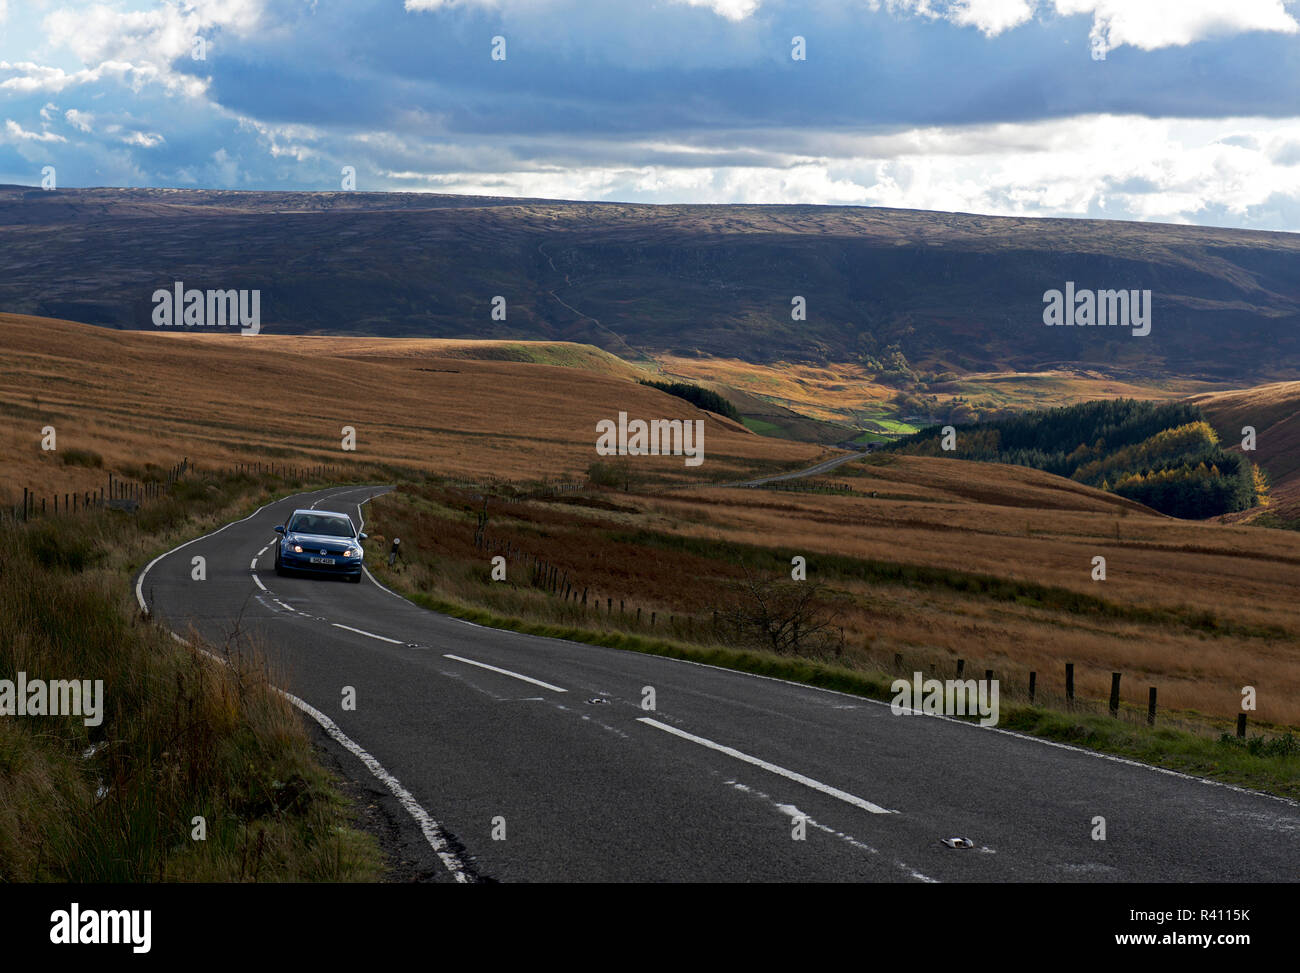 Car on road, Holme Moss, West Yorkshire, England UK - Stock Image